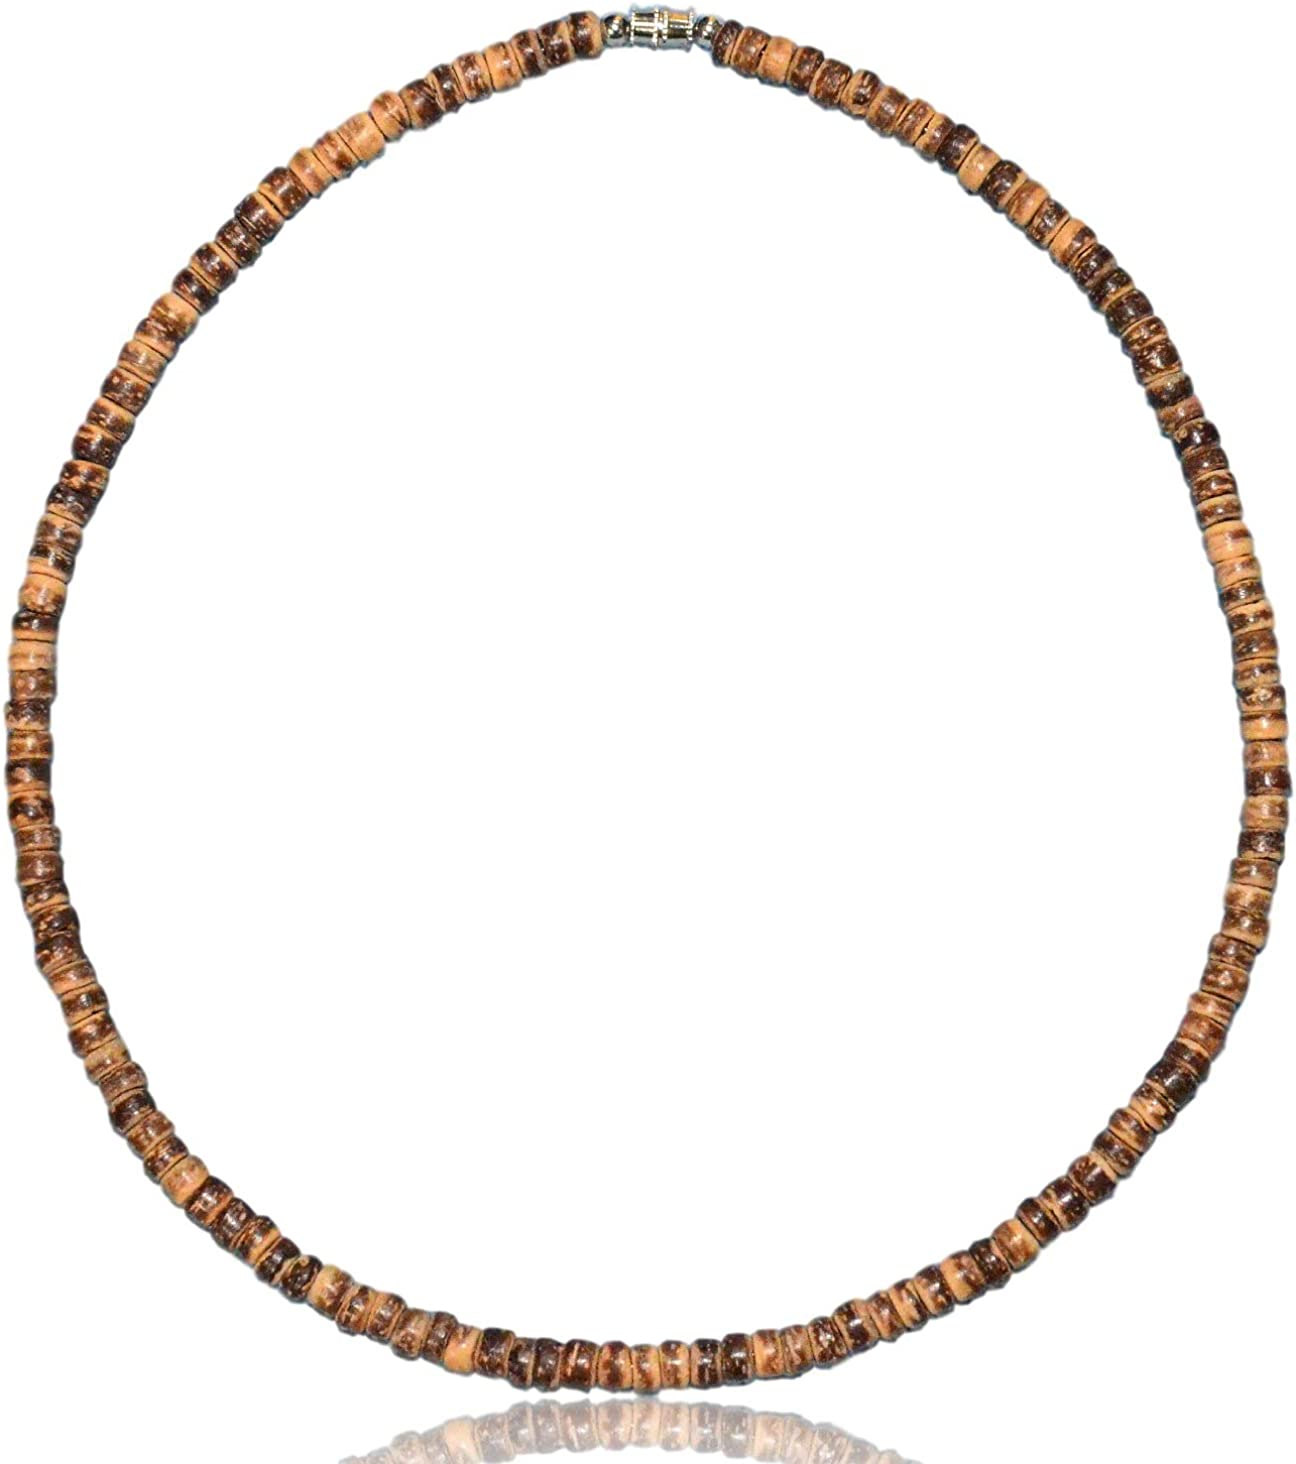 Native Treasure Brown Tiger Coco Shell Wood Bead Surfer Necklace - 5mm (3/16